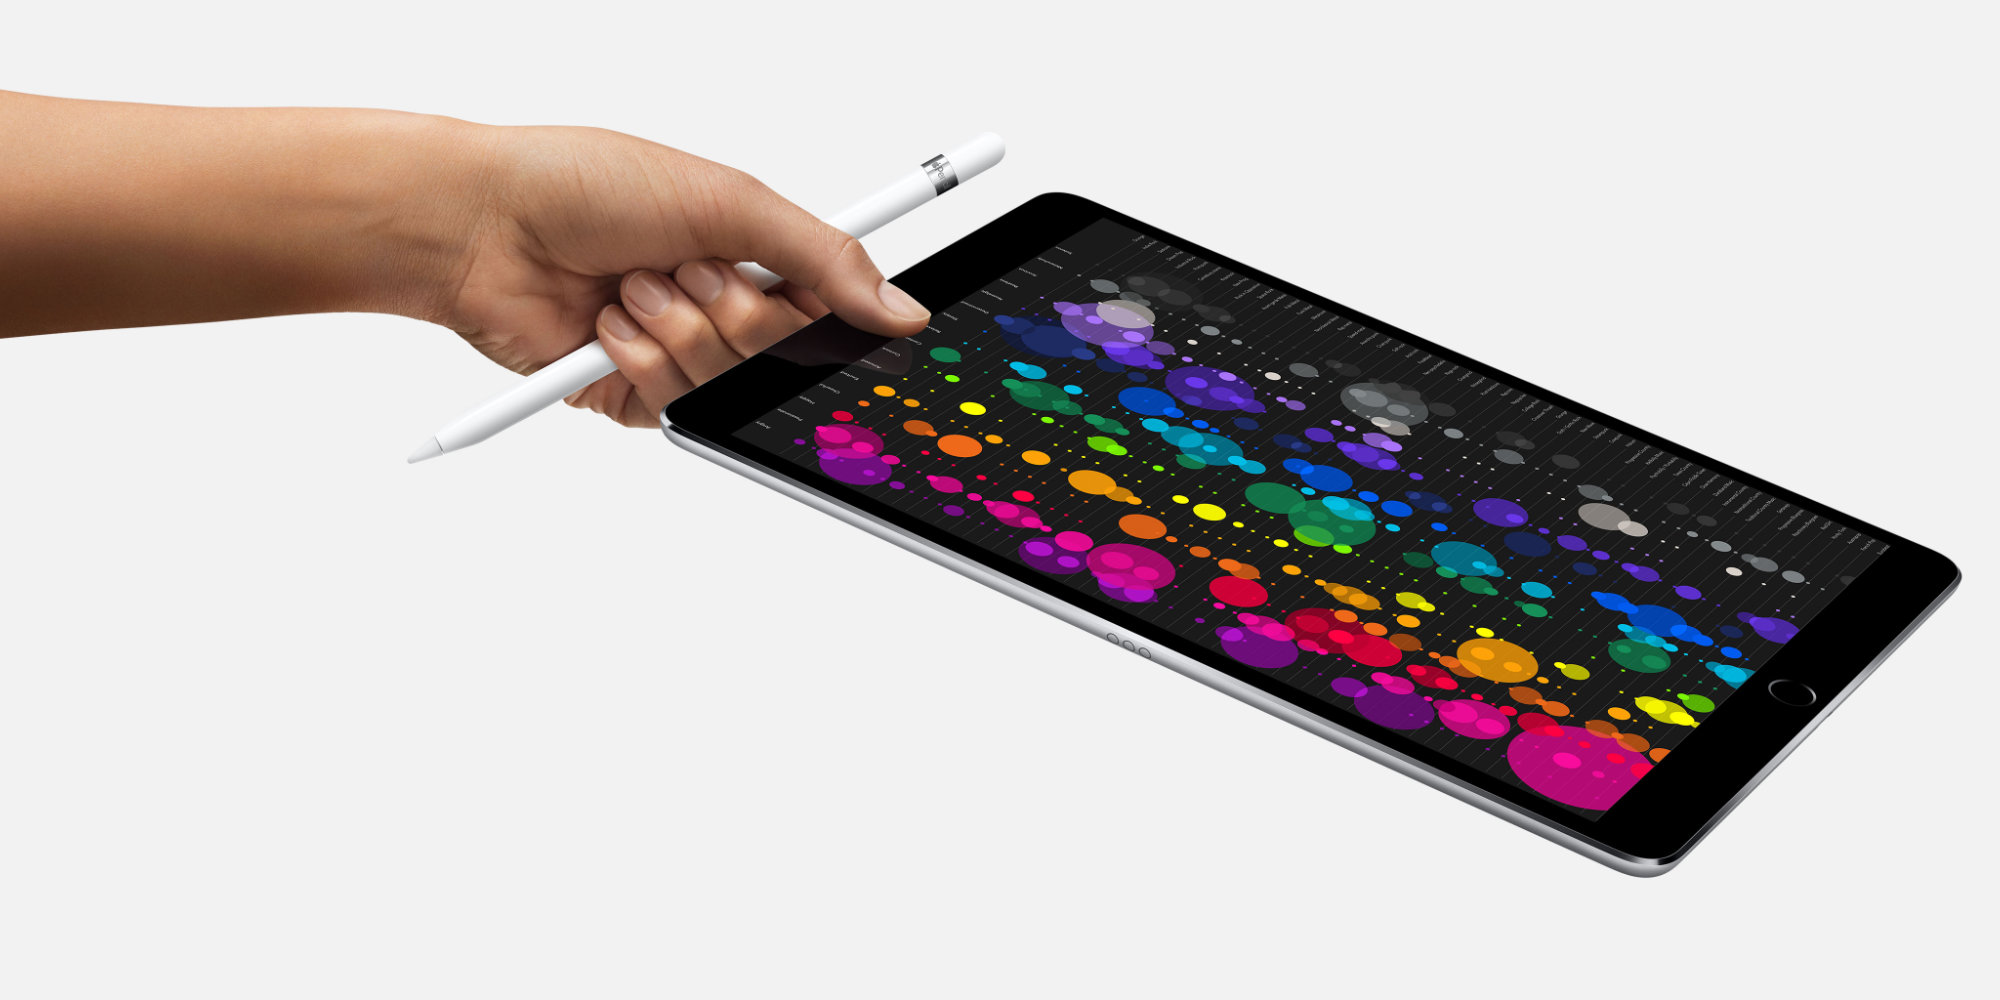 Save up to $360 on Apple's prev. gen. 10.5-inch iPad Pro with cellular